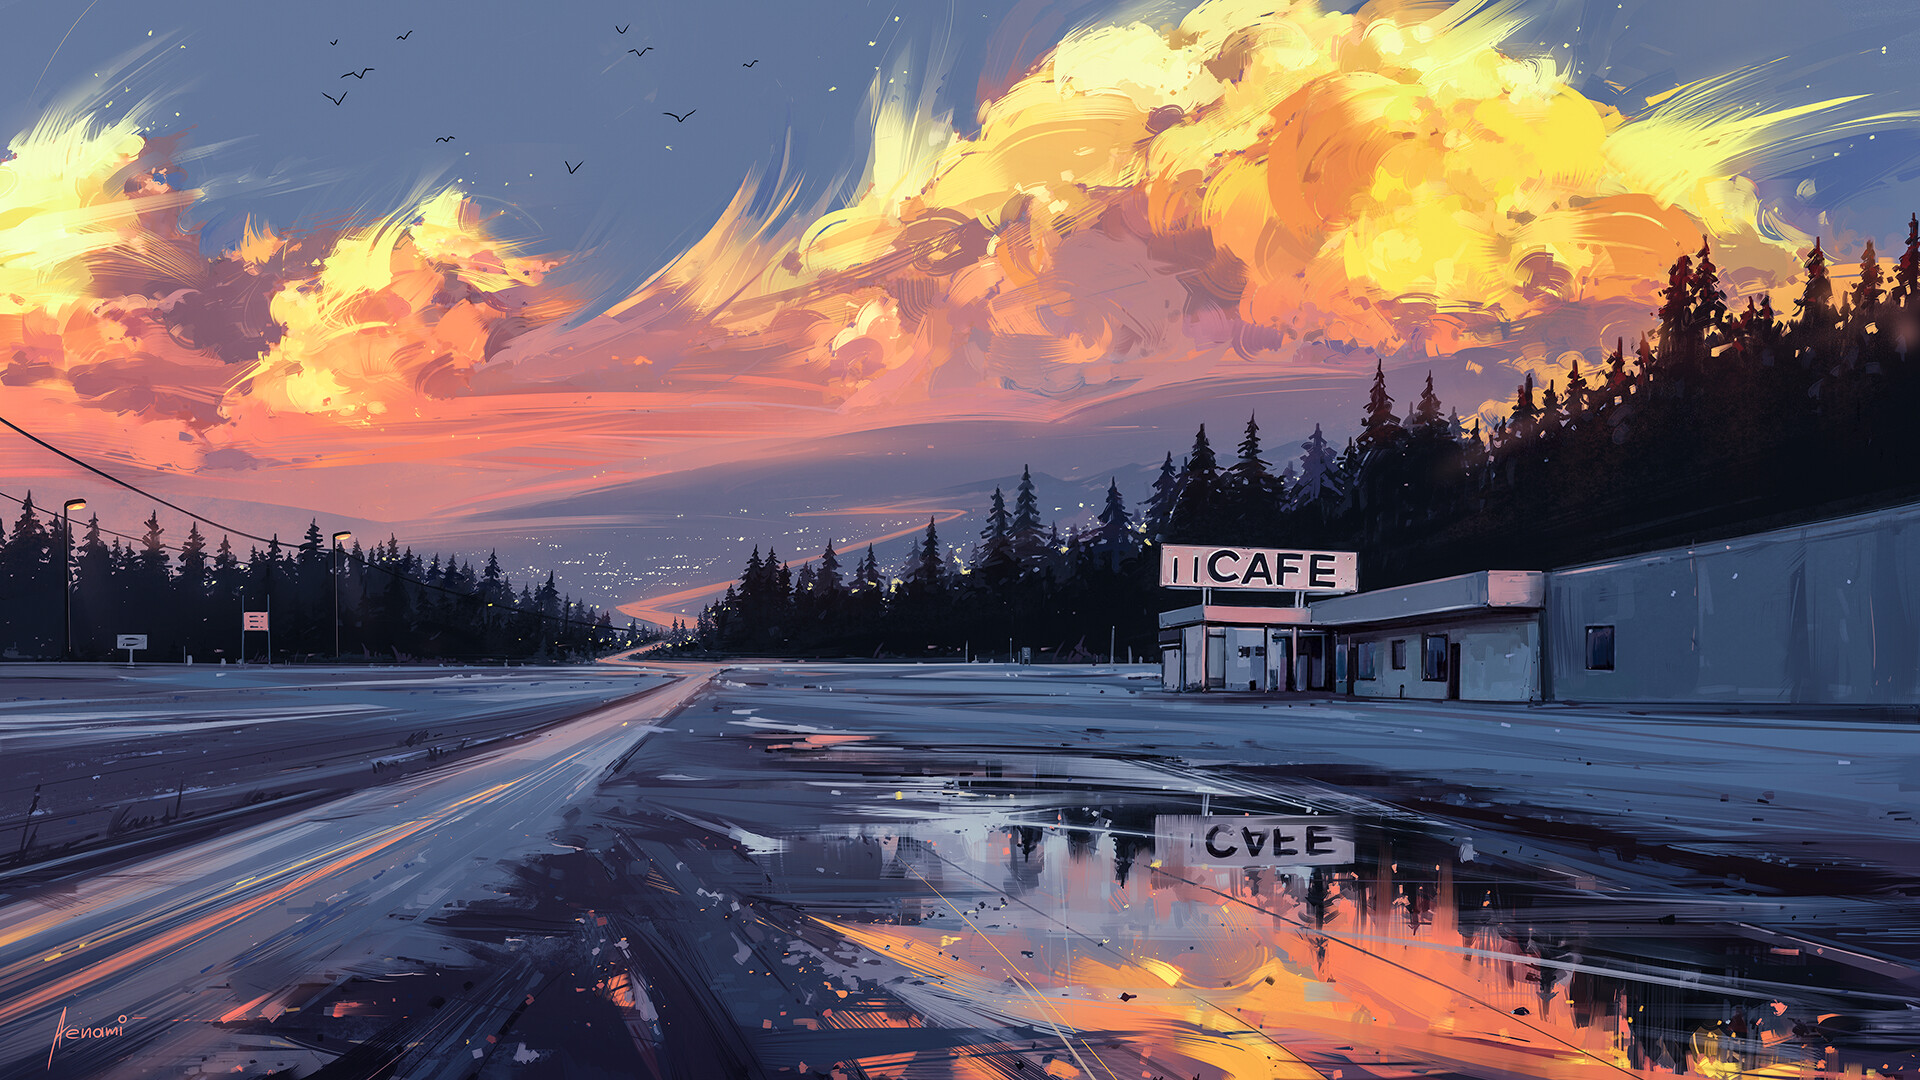 General 1920x1080 cafes road puddle water clouds reflection environment digital art birds building lights Aenami artwork